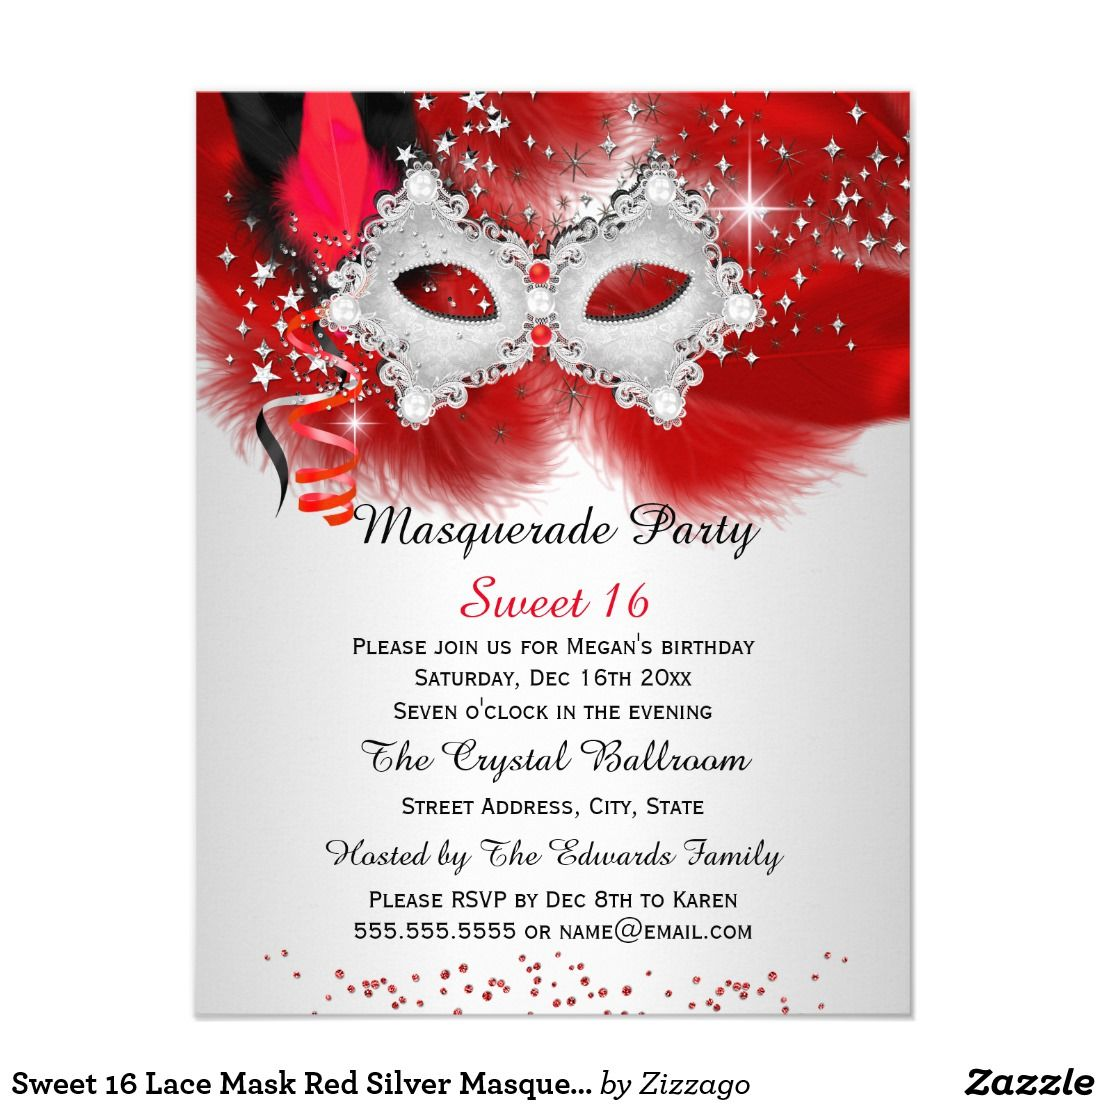 Sweet 16 Lace Mask Red Silver Masquerade Invitation | Pinterest ...